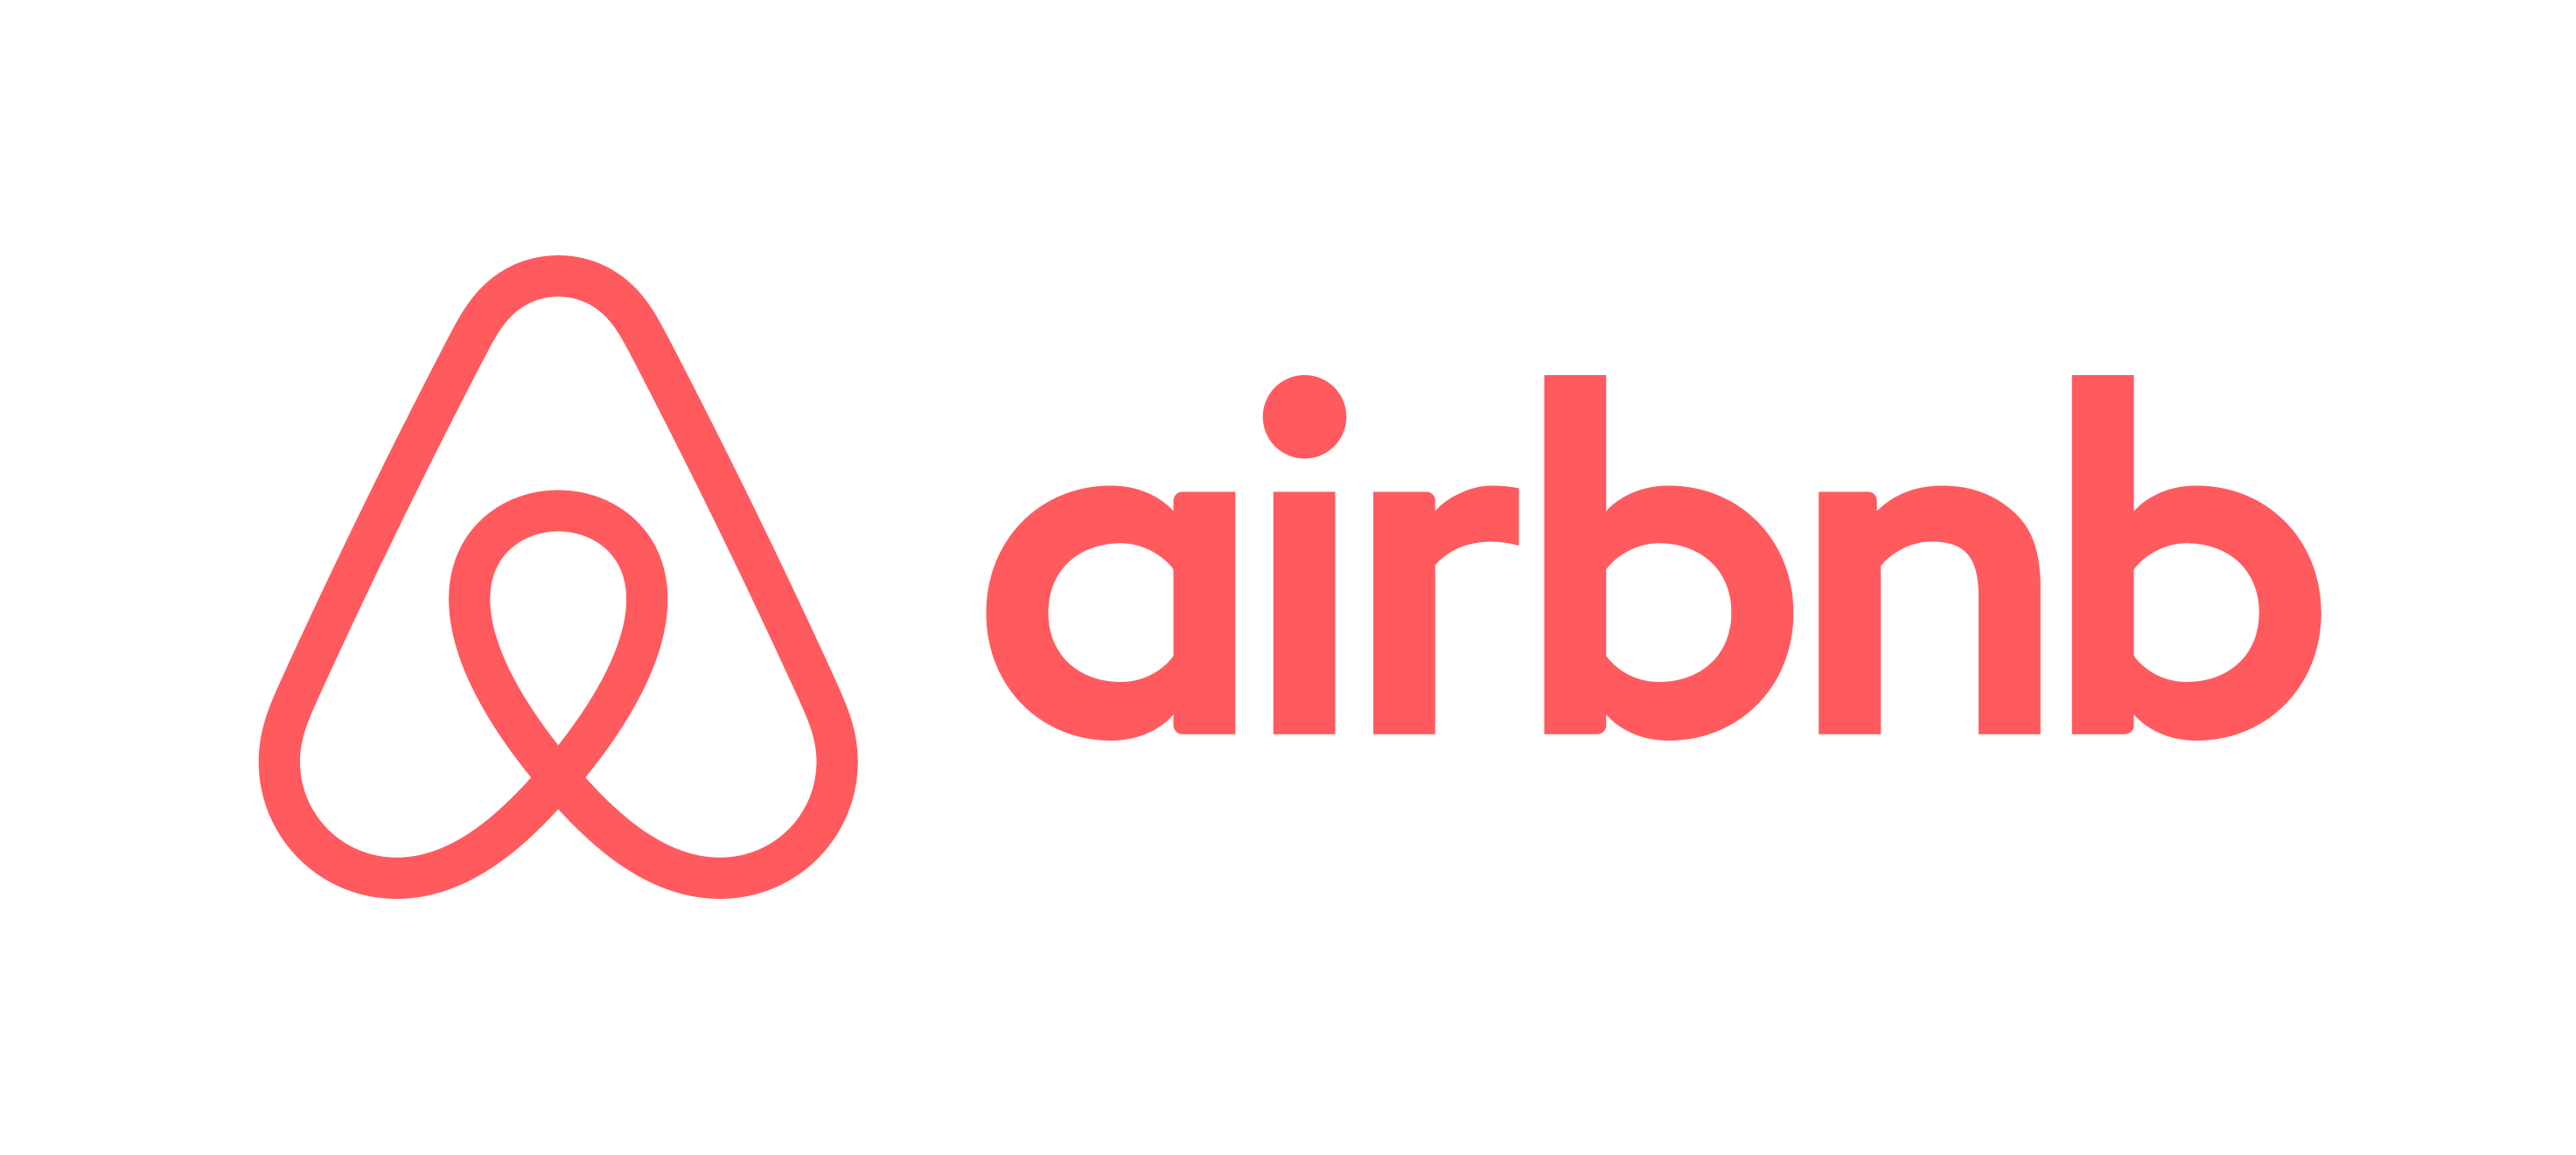 Advertise your holiday home free on Airbnb